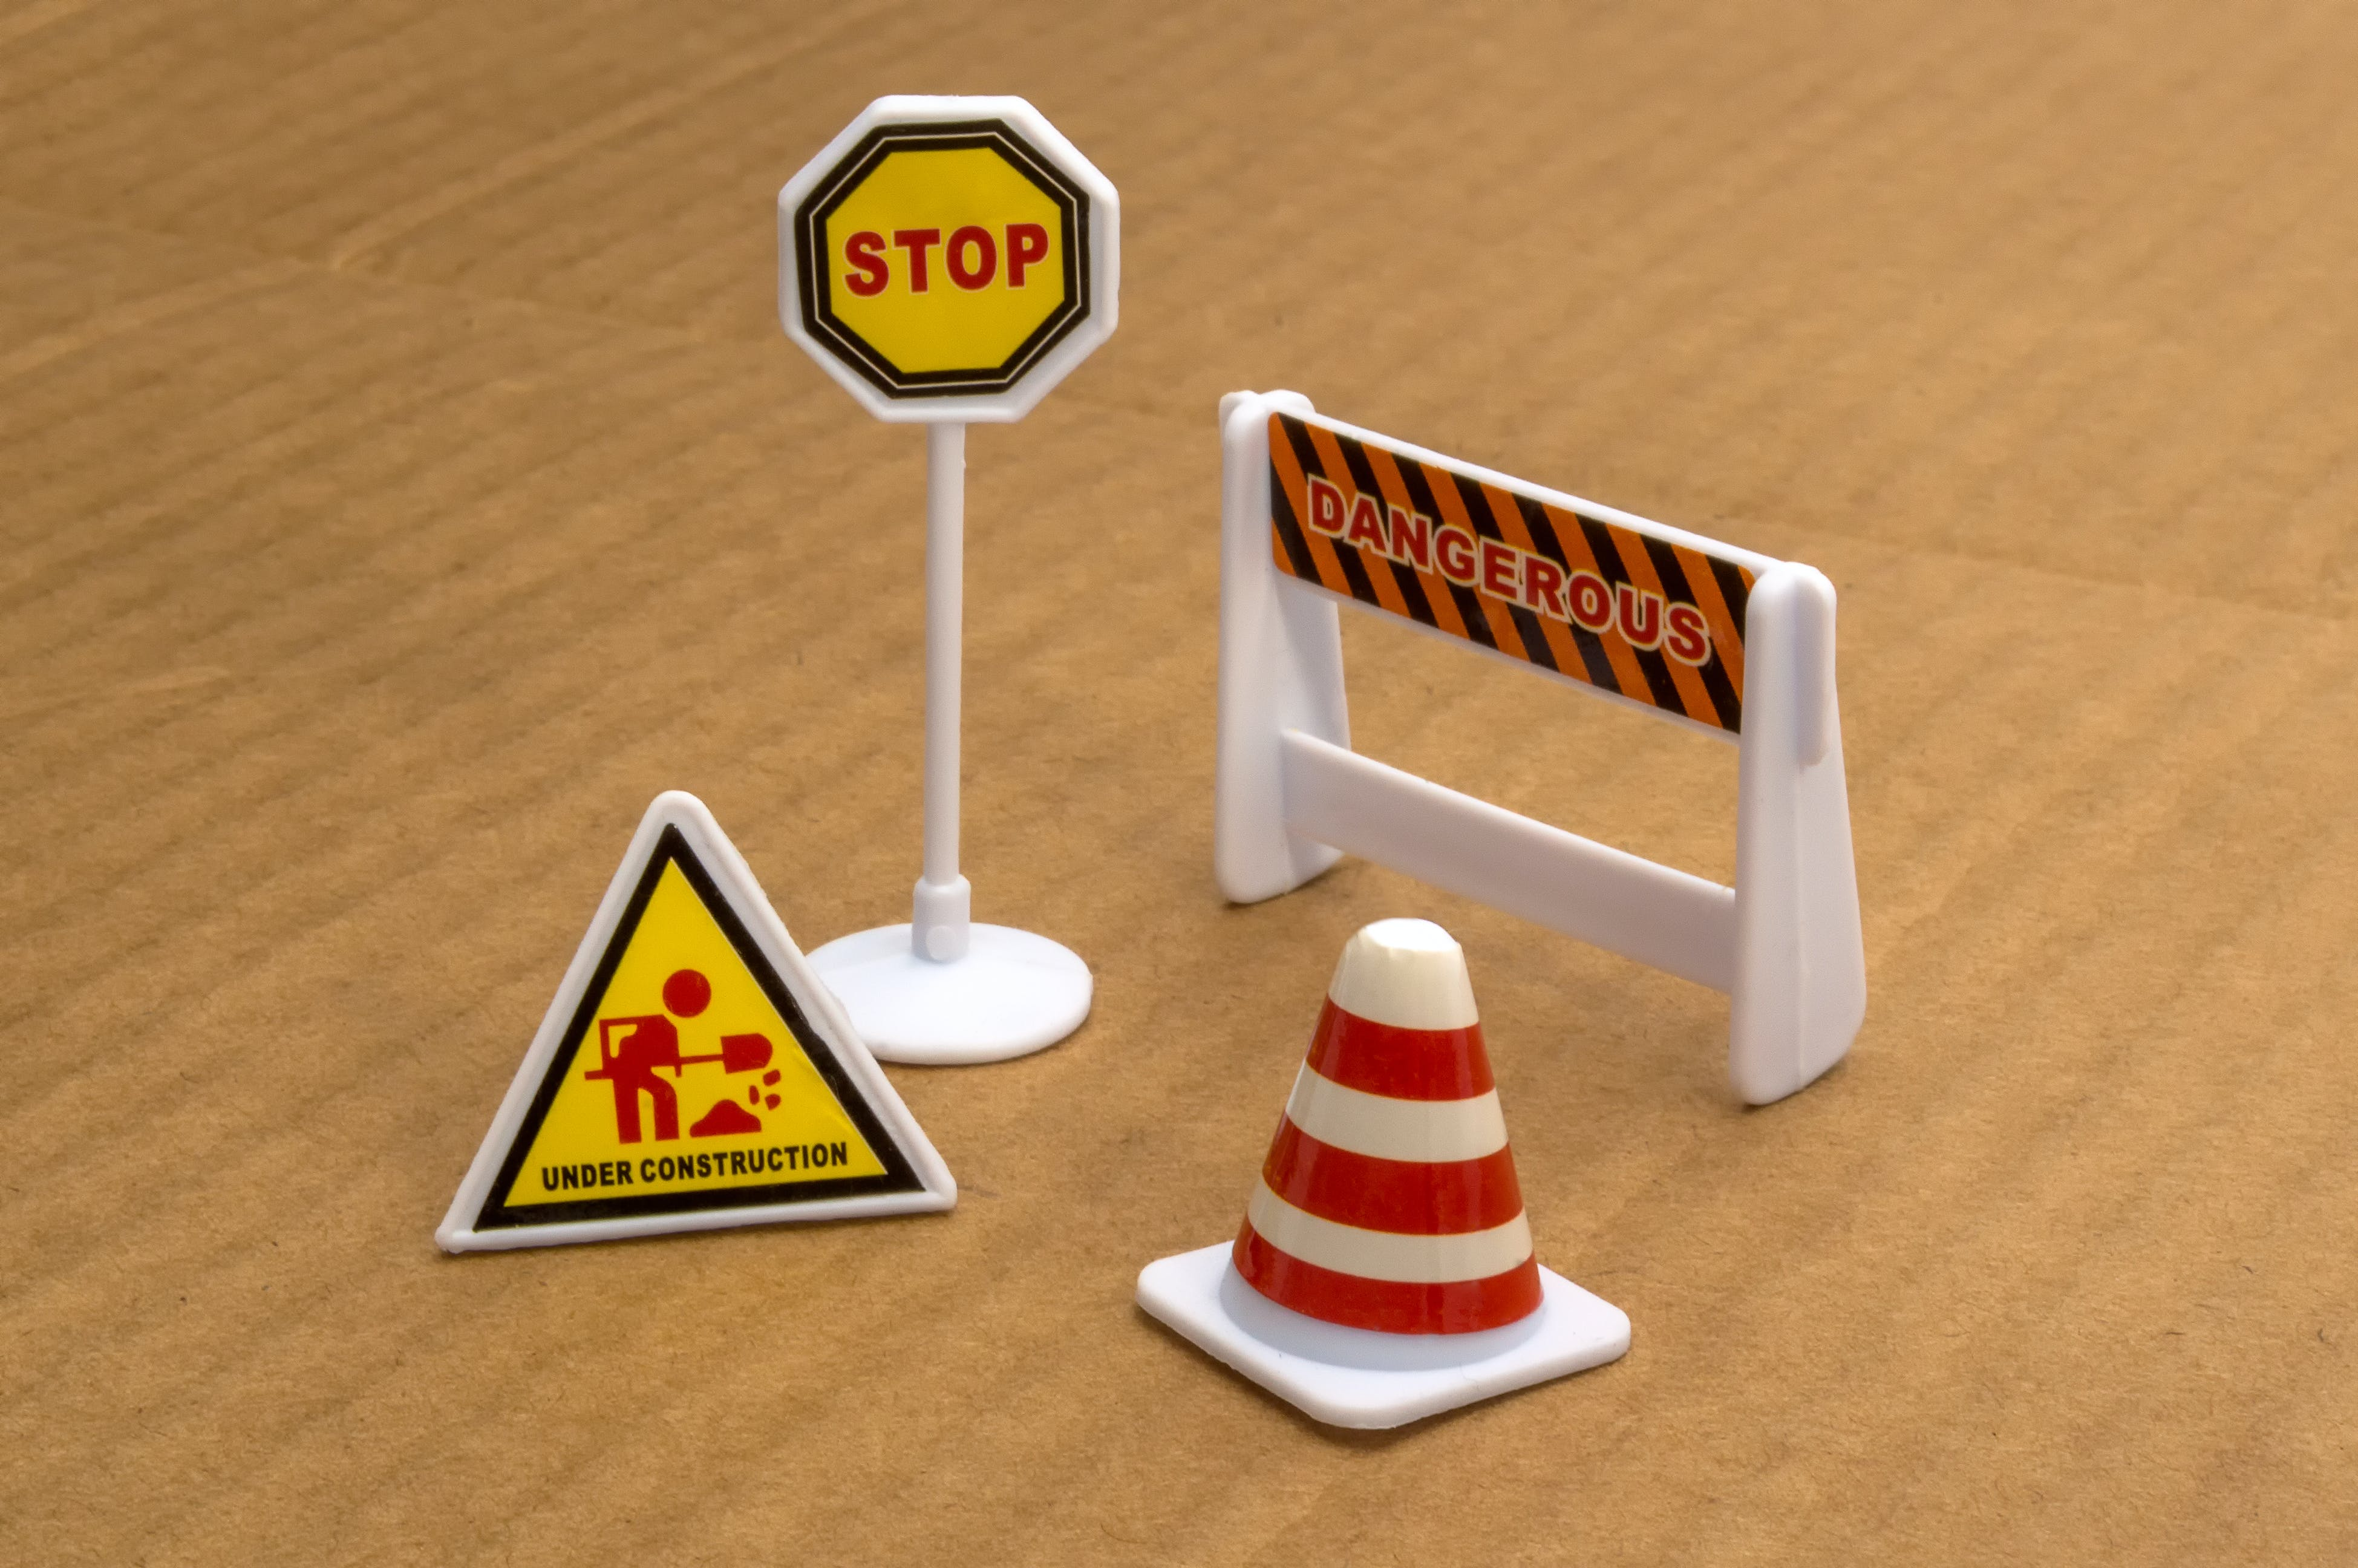 Free stock photo of bajo construccion, señales de precaución, Señales de transito, traffic signs